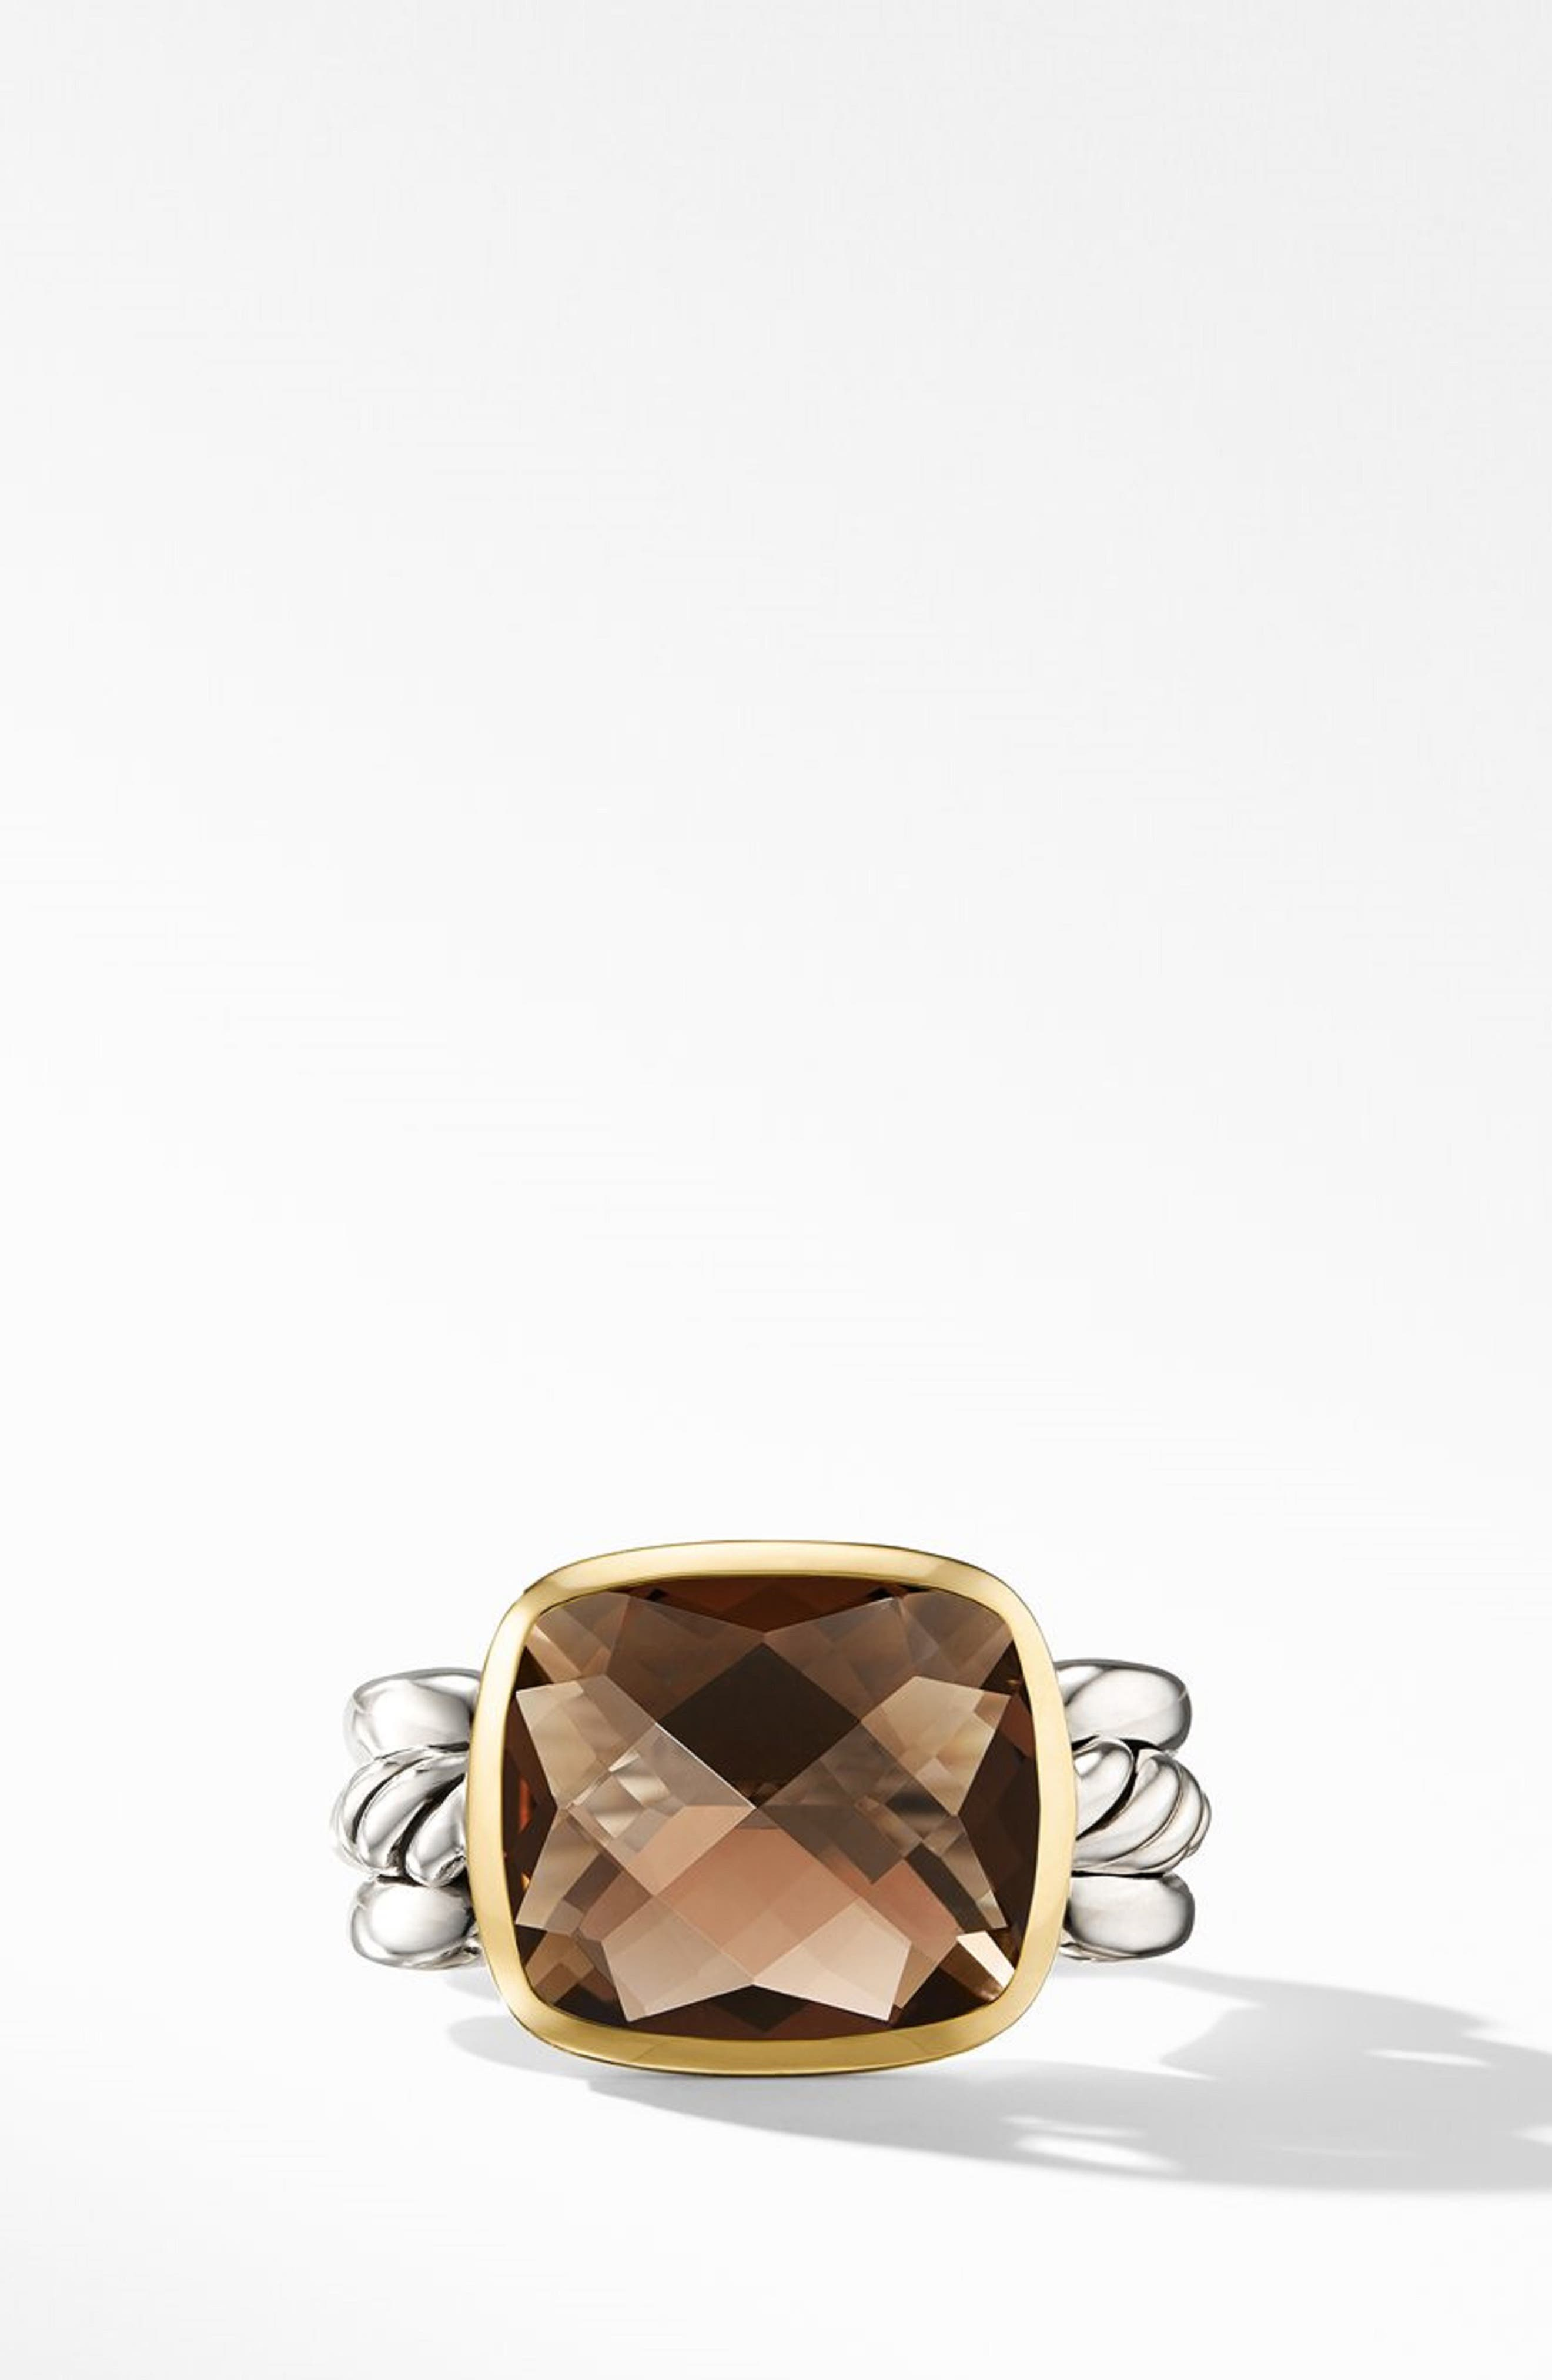 Wellesley Link Statement Ring with 18K Gold,                             Main thumbnail 1, color,                             SILVER/ SMOKY QUARTZ